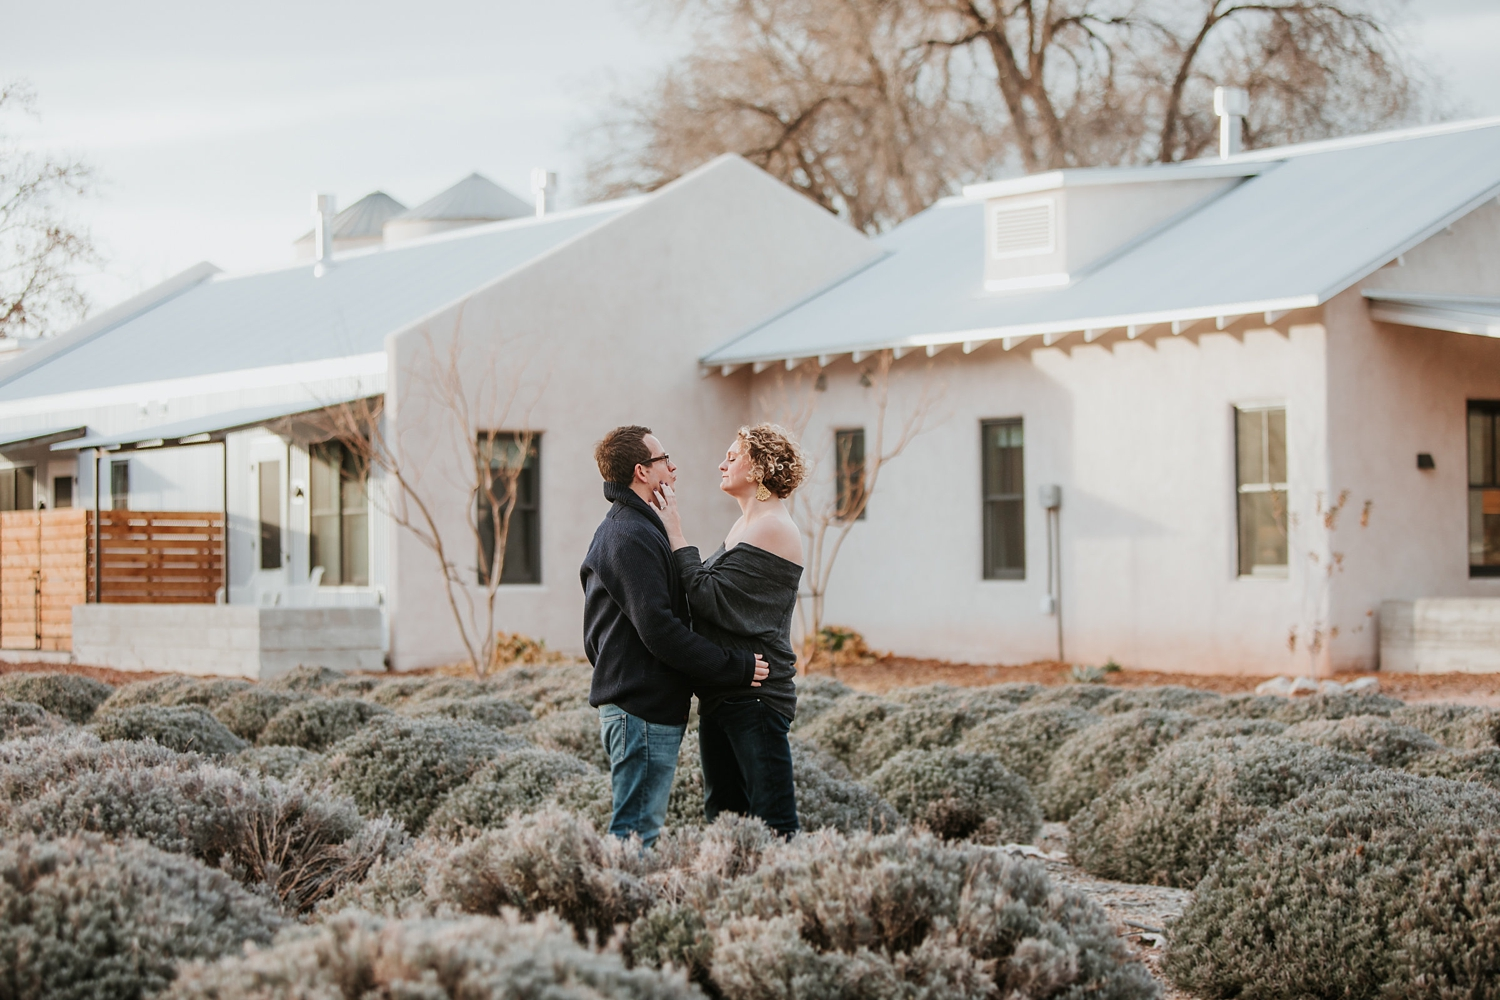 Alicia+lucia+photography+-+albuquerque+wedding+photographer+-+santa+fe+wedding+photography+-+new+mexico+wedding+photographer+-+new+mexico+engagement+-+los+poblanos+winter+engagement+-+los+poblanos+fall+wedding_0012.jpg